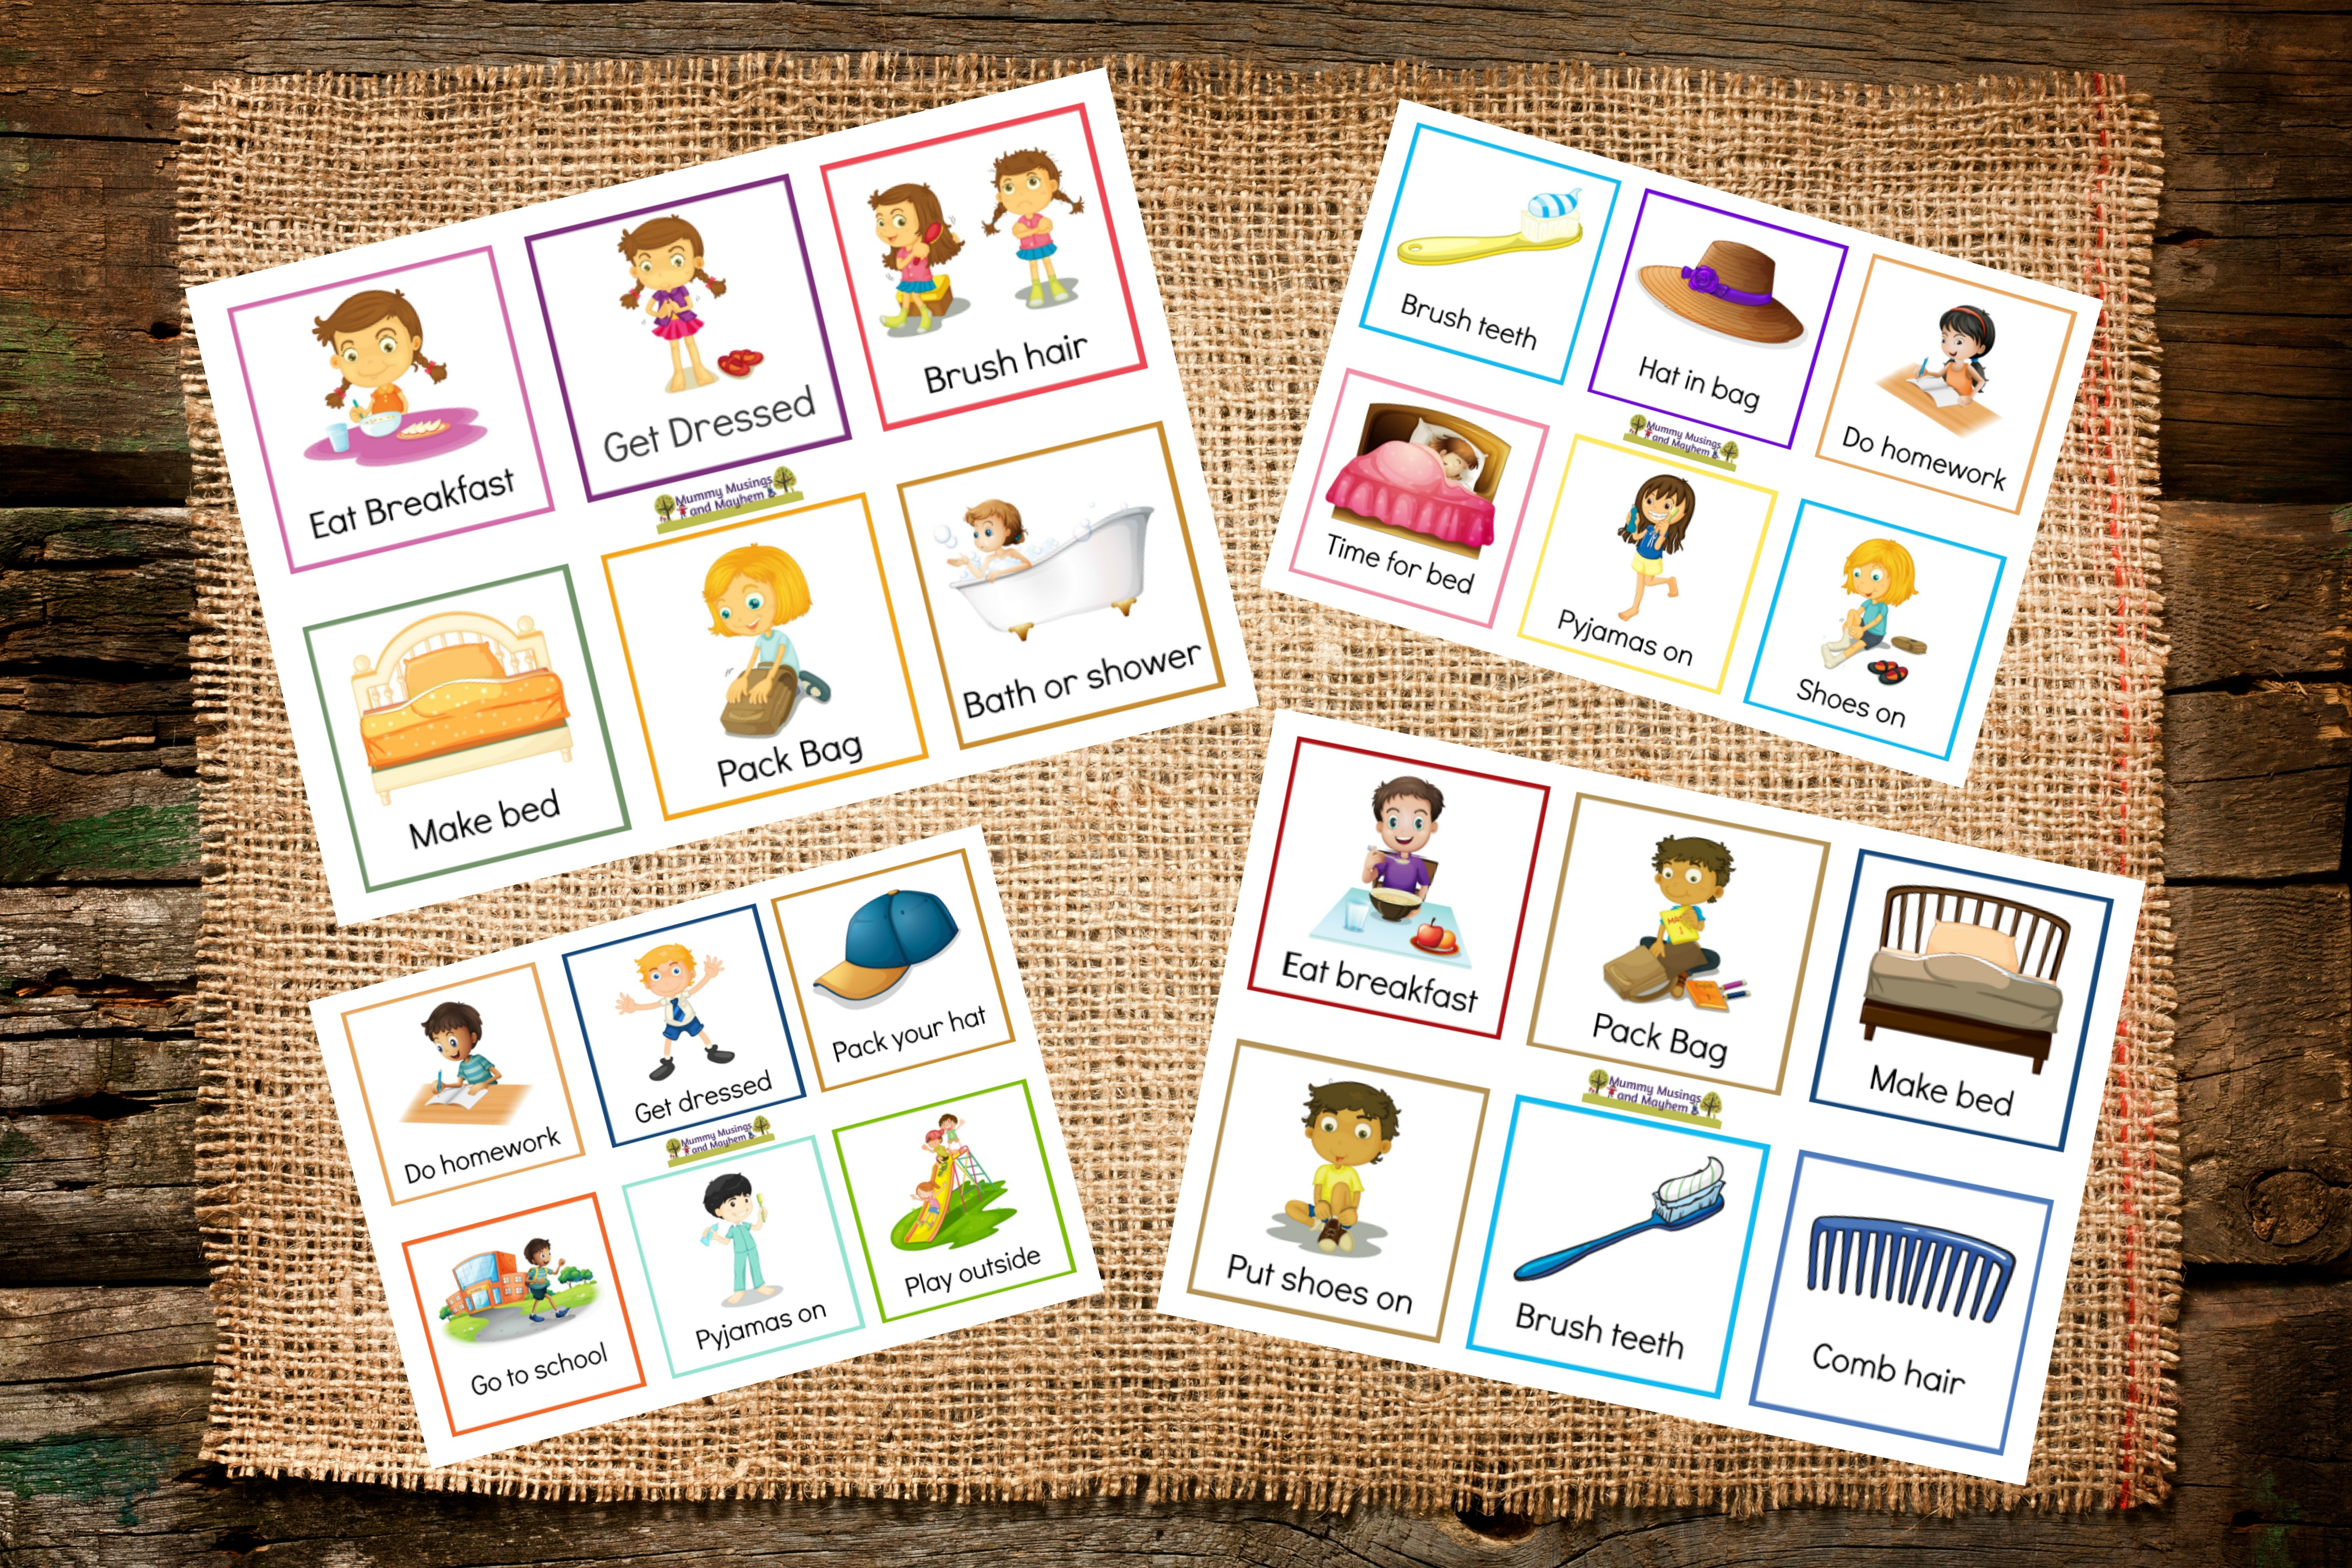 Back To School Routines - Free Printable Cards To Make It Easier - Free Printable Schedule Cards